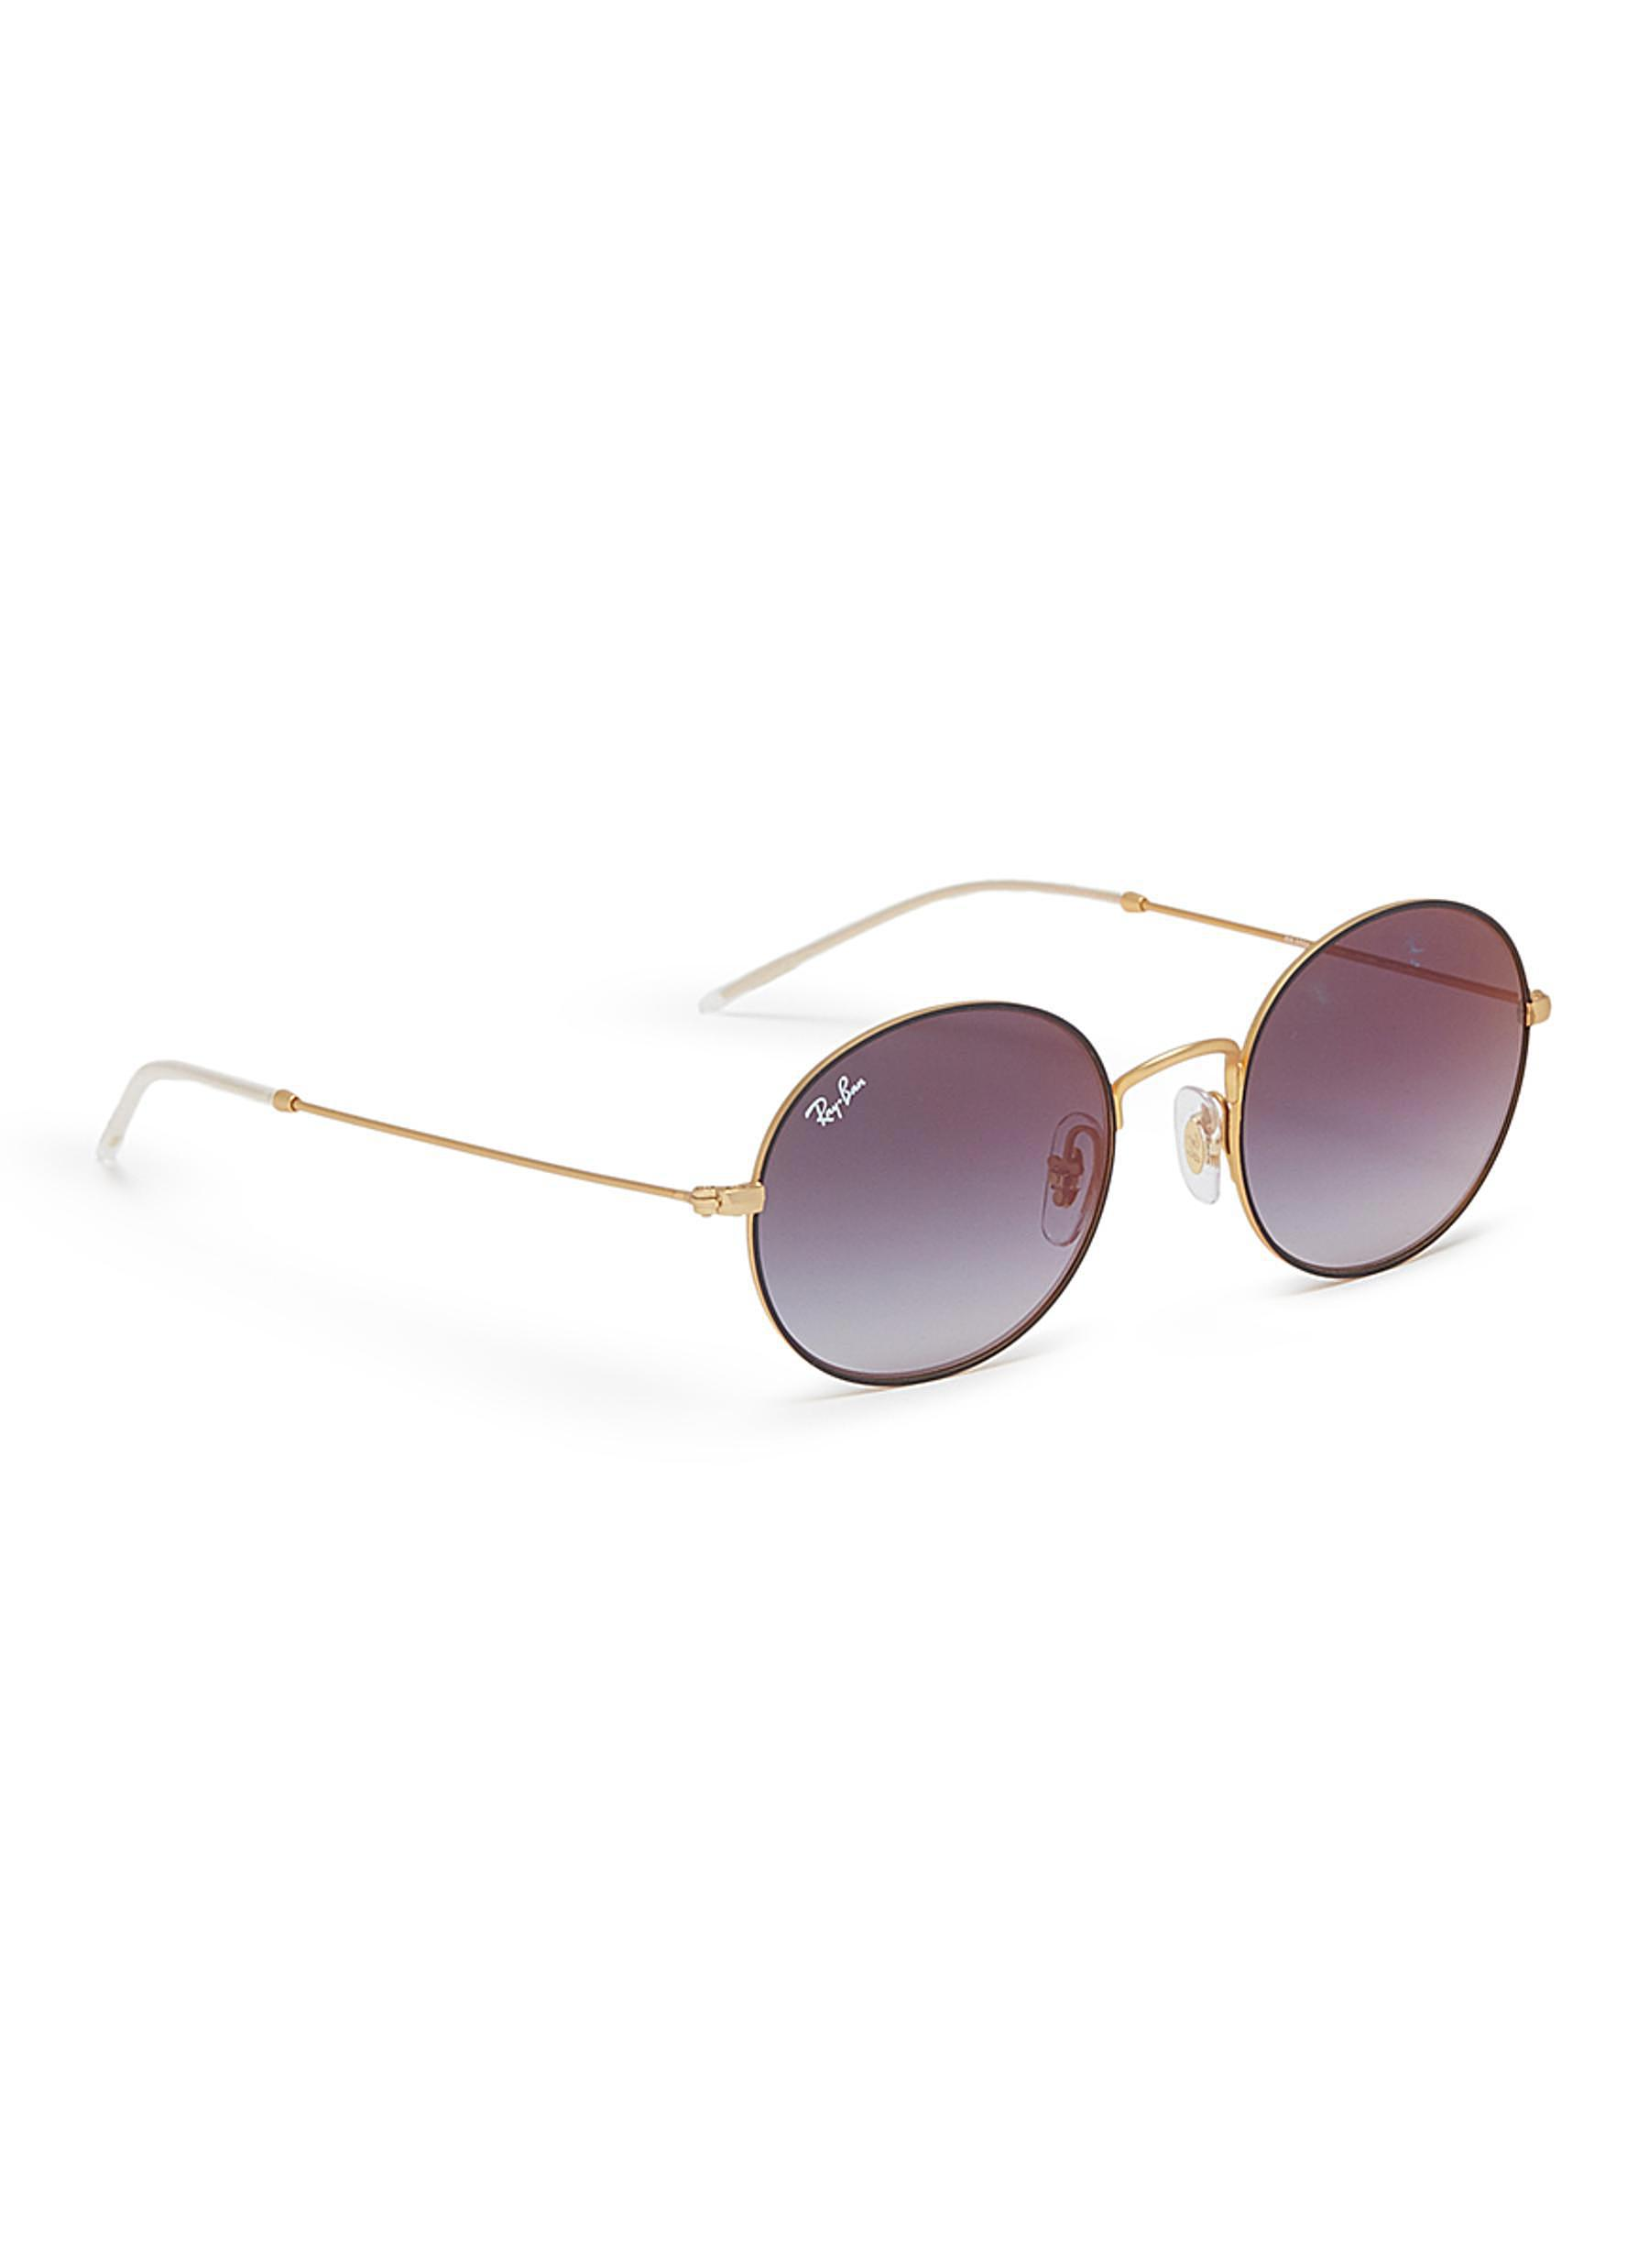 45173de2fe Lyst - Ray-Ban  rb3594  Metal Oval Sunglasses in Gray